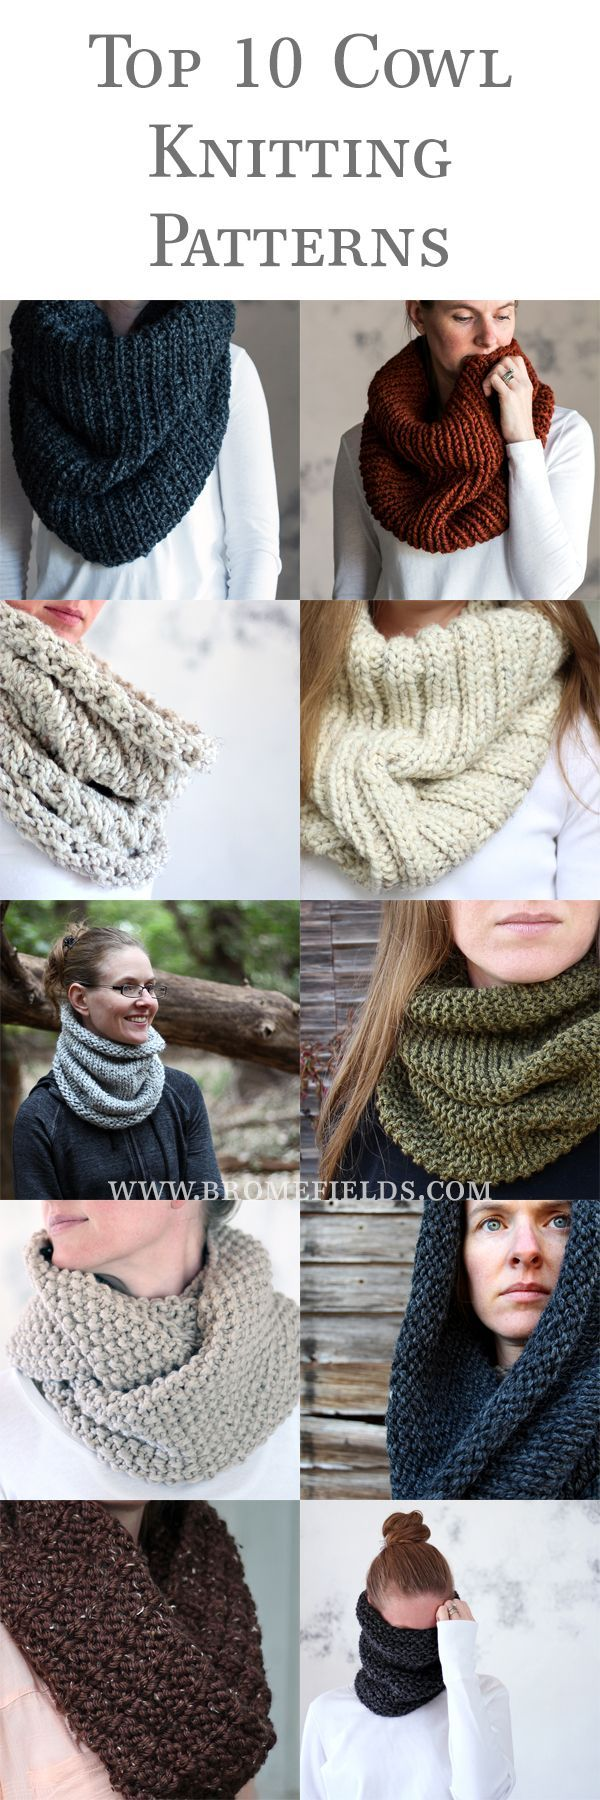 Top 10 Cowl Knitting Patterns by Brome Fields. For more Free knitting ideas, head to http://www.sewinlove.com.au/category/knitting/